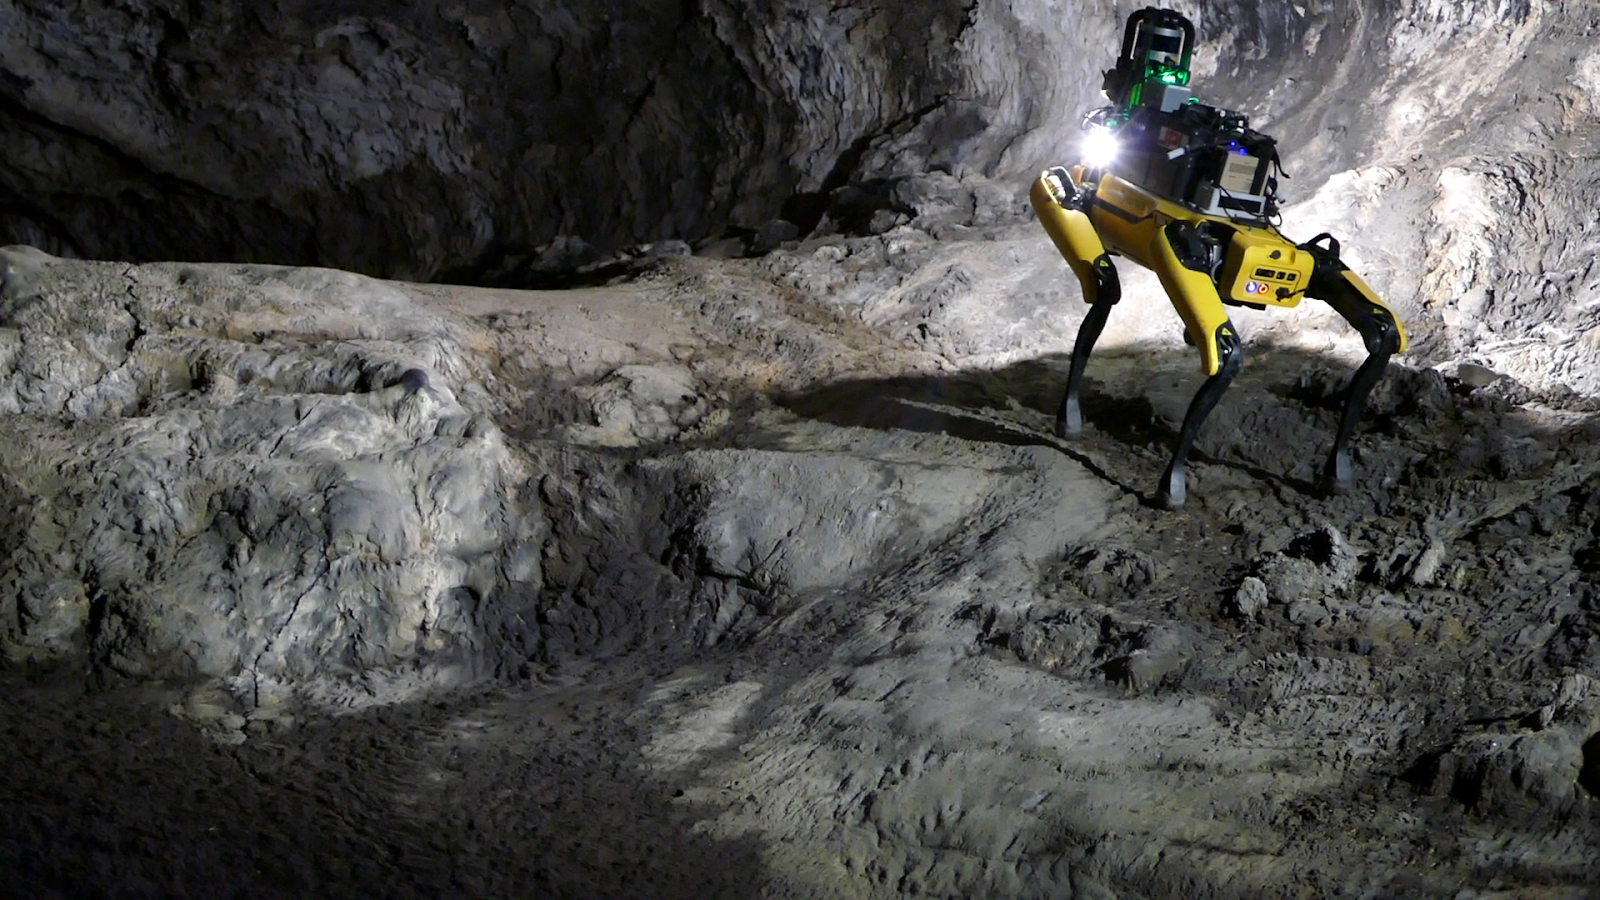 Robot dogs could someday explore deep caves on Mars